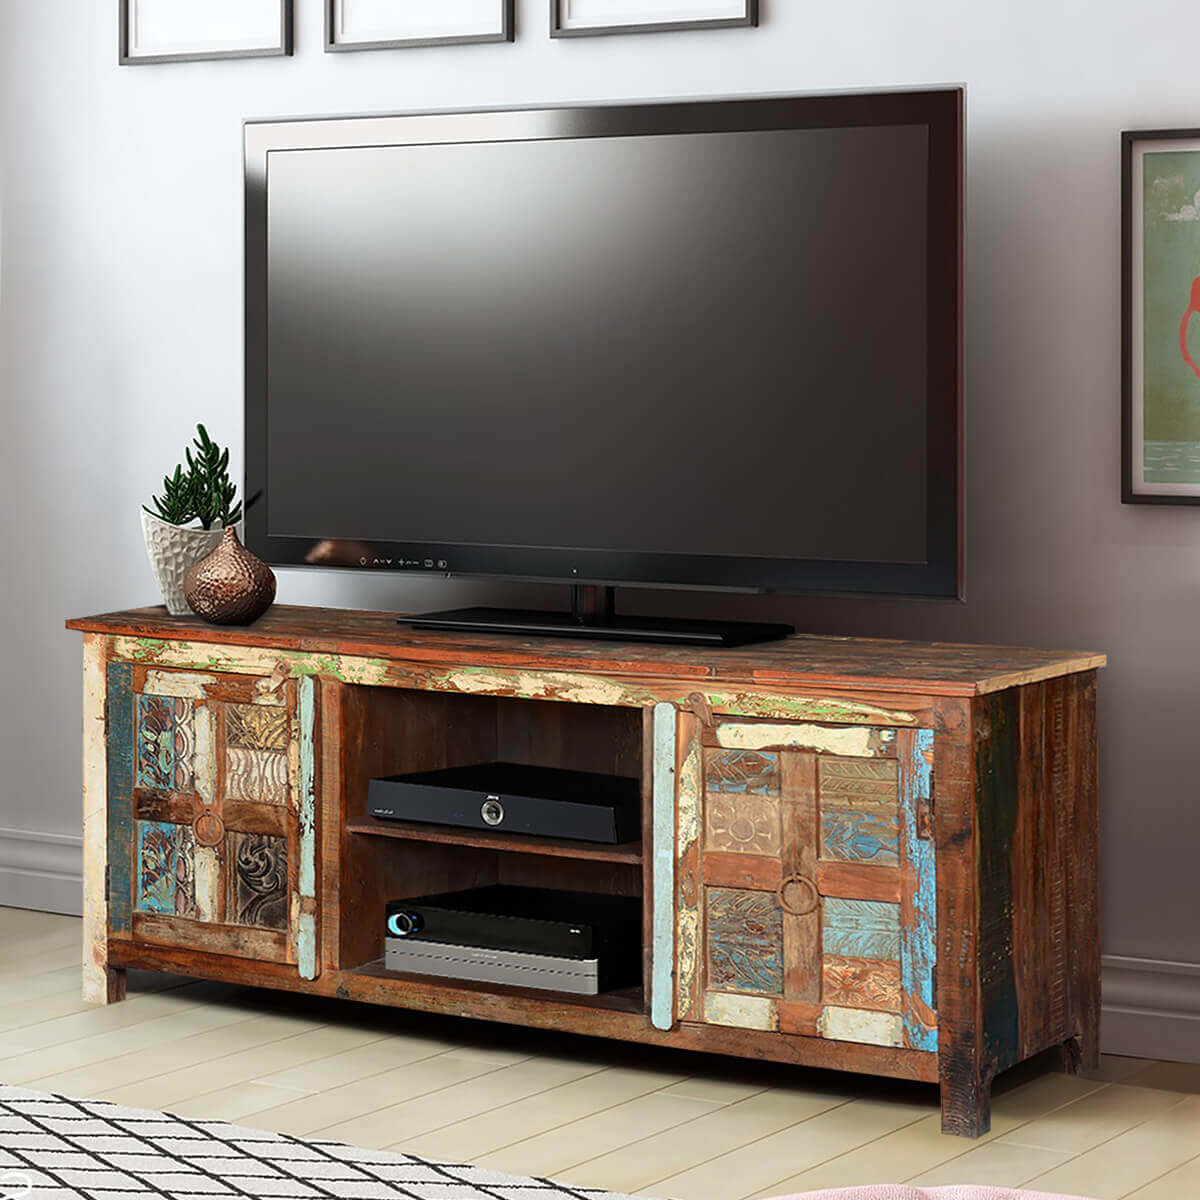 Frontier Rustic Hand Carved Reclaimed Wood TV Console Media Cabinet